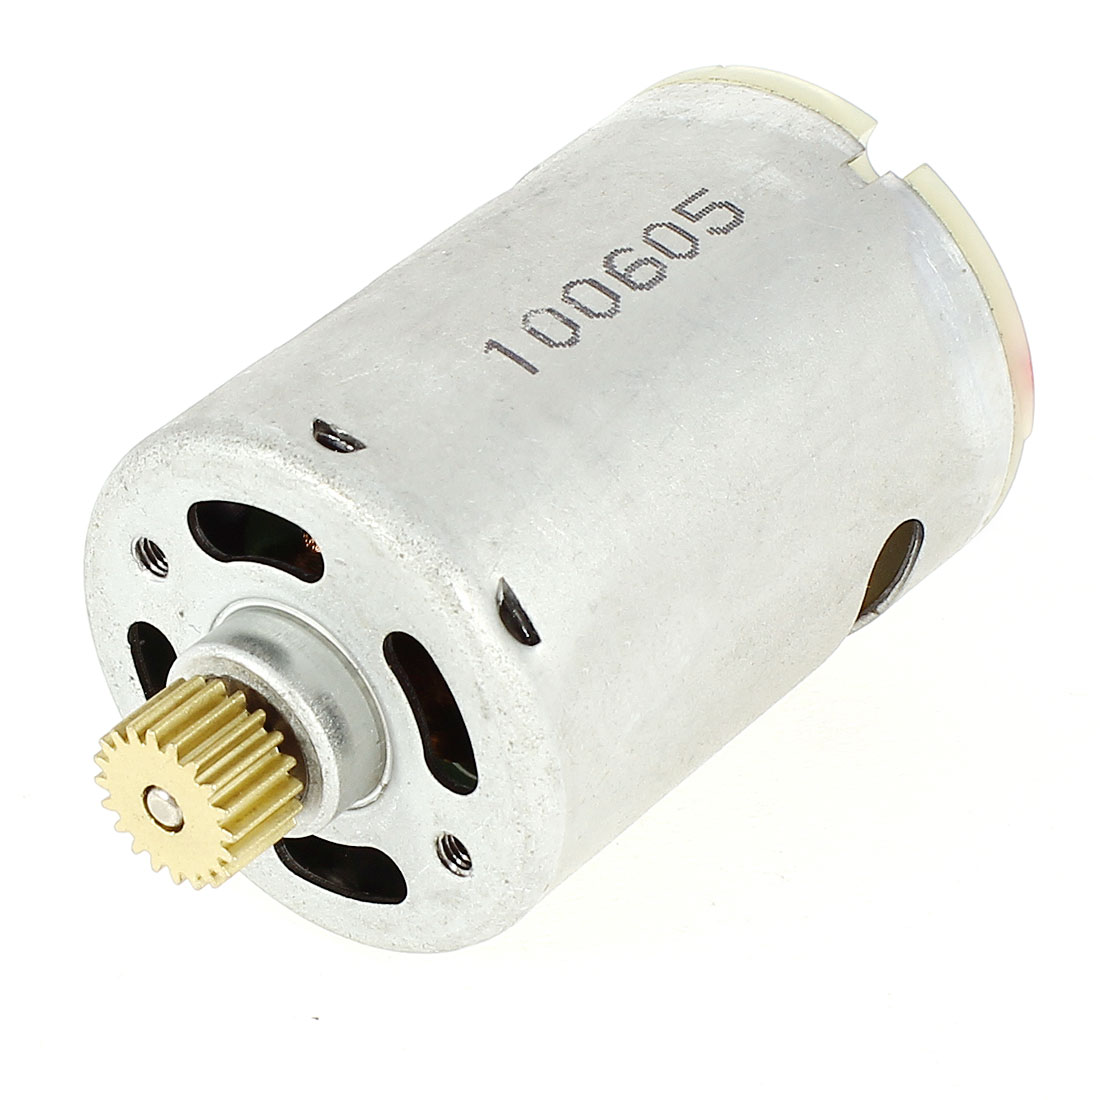 JRS540 DC 12-24V 1150-2300RPM Speed Mini Cylinder Shape Electric DC Geared Motor